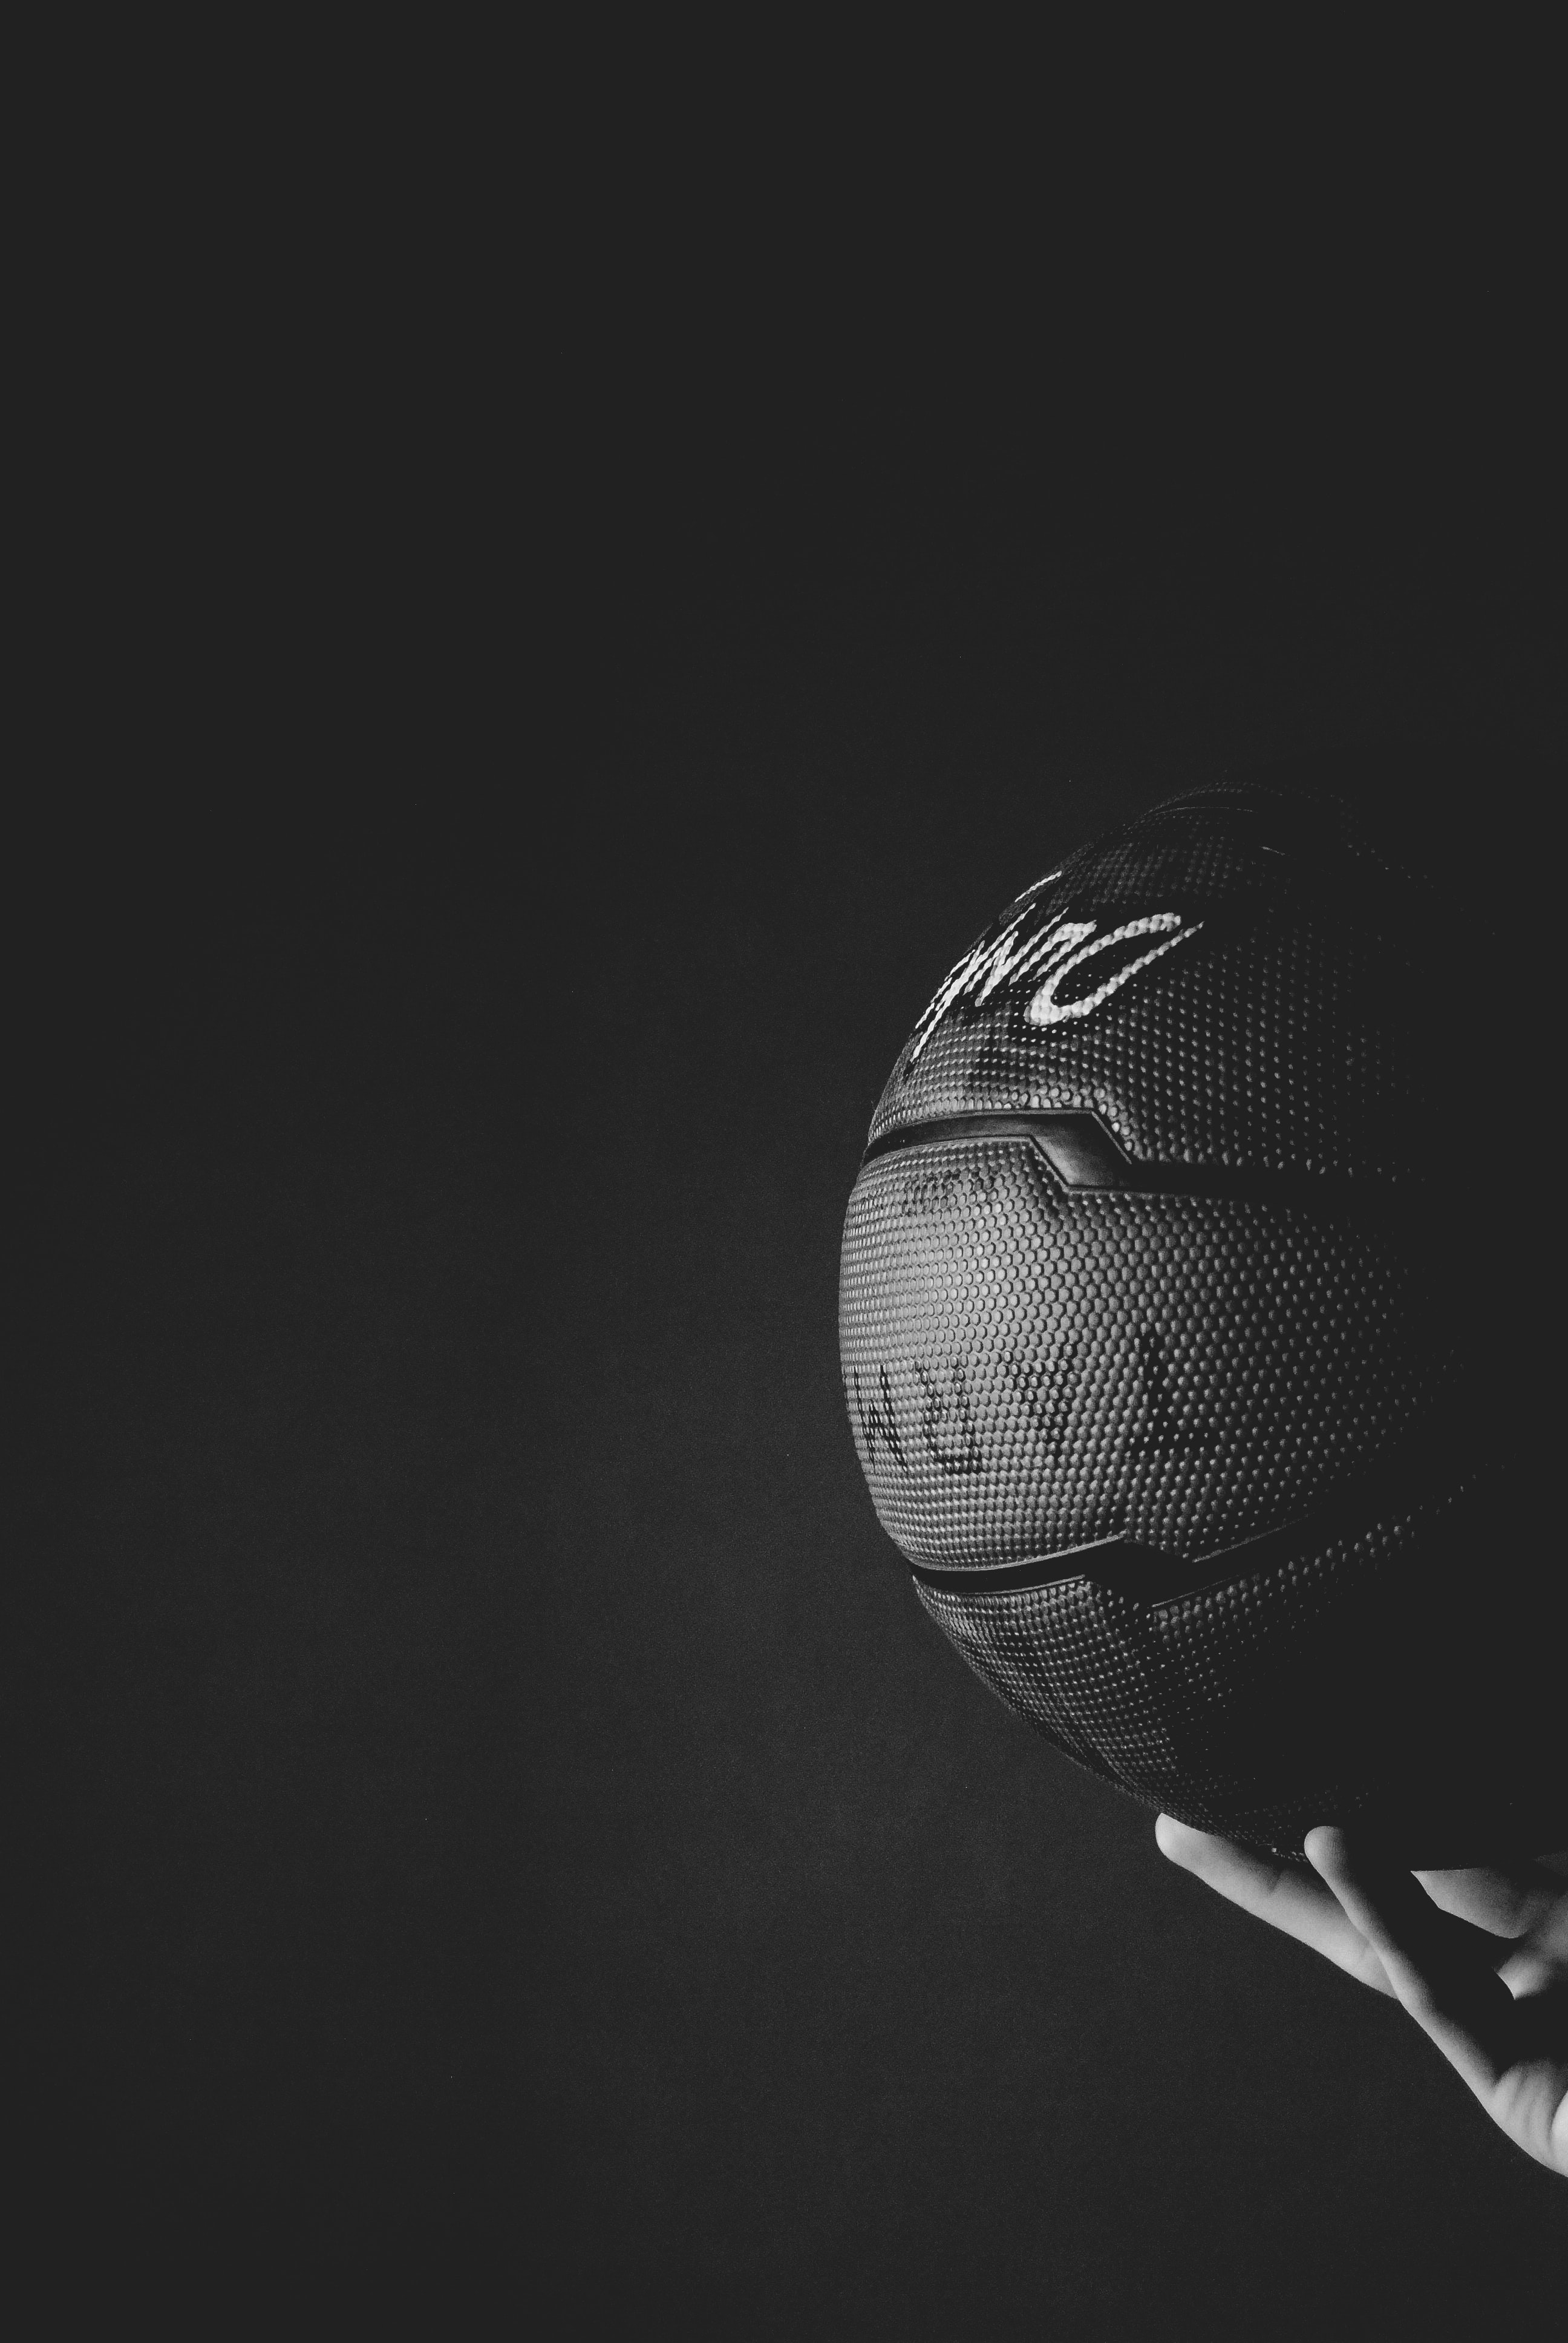 75885 Screensavers and Wallpapers Basketball for phone. Download Sports, Basketball, Ball, Hand, Bw, Chb pictures for free